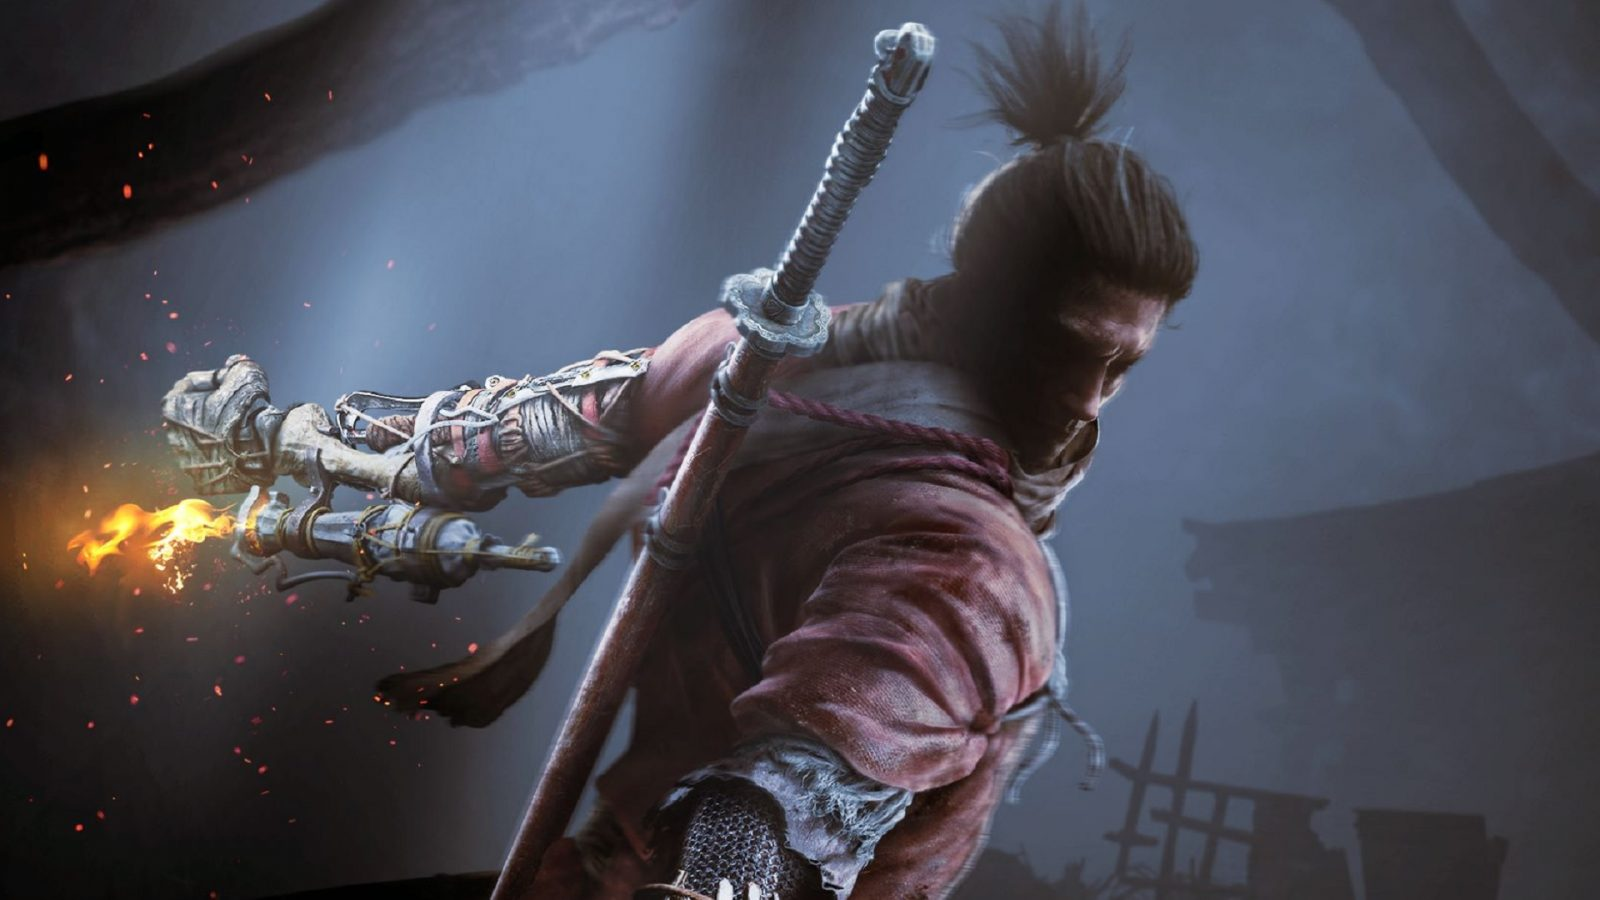 The Steamies have been announced, and Sekiro wins Game of the Year